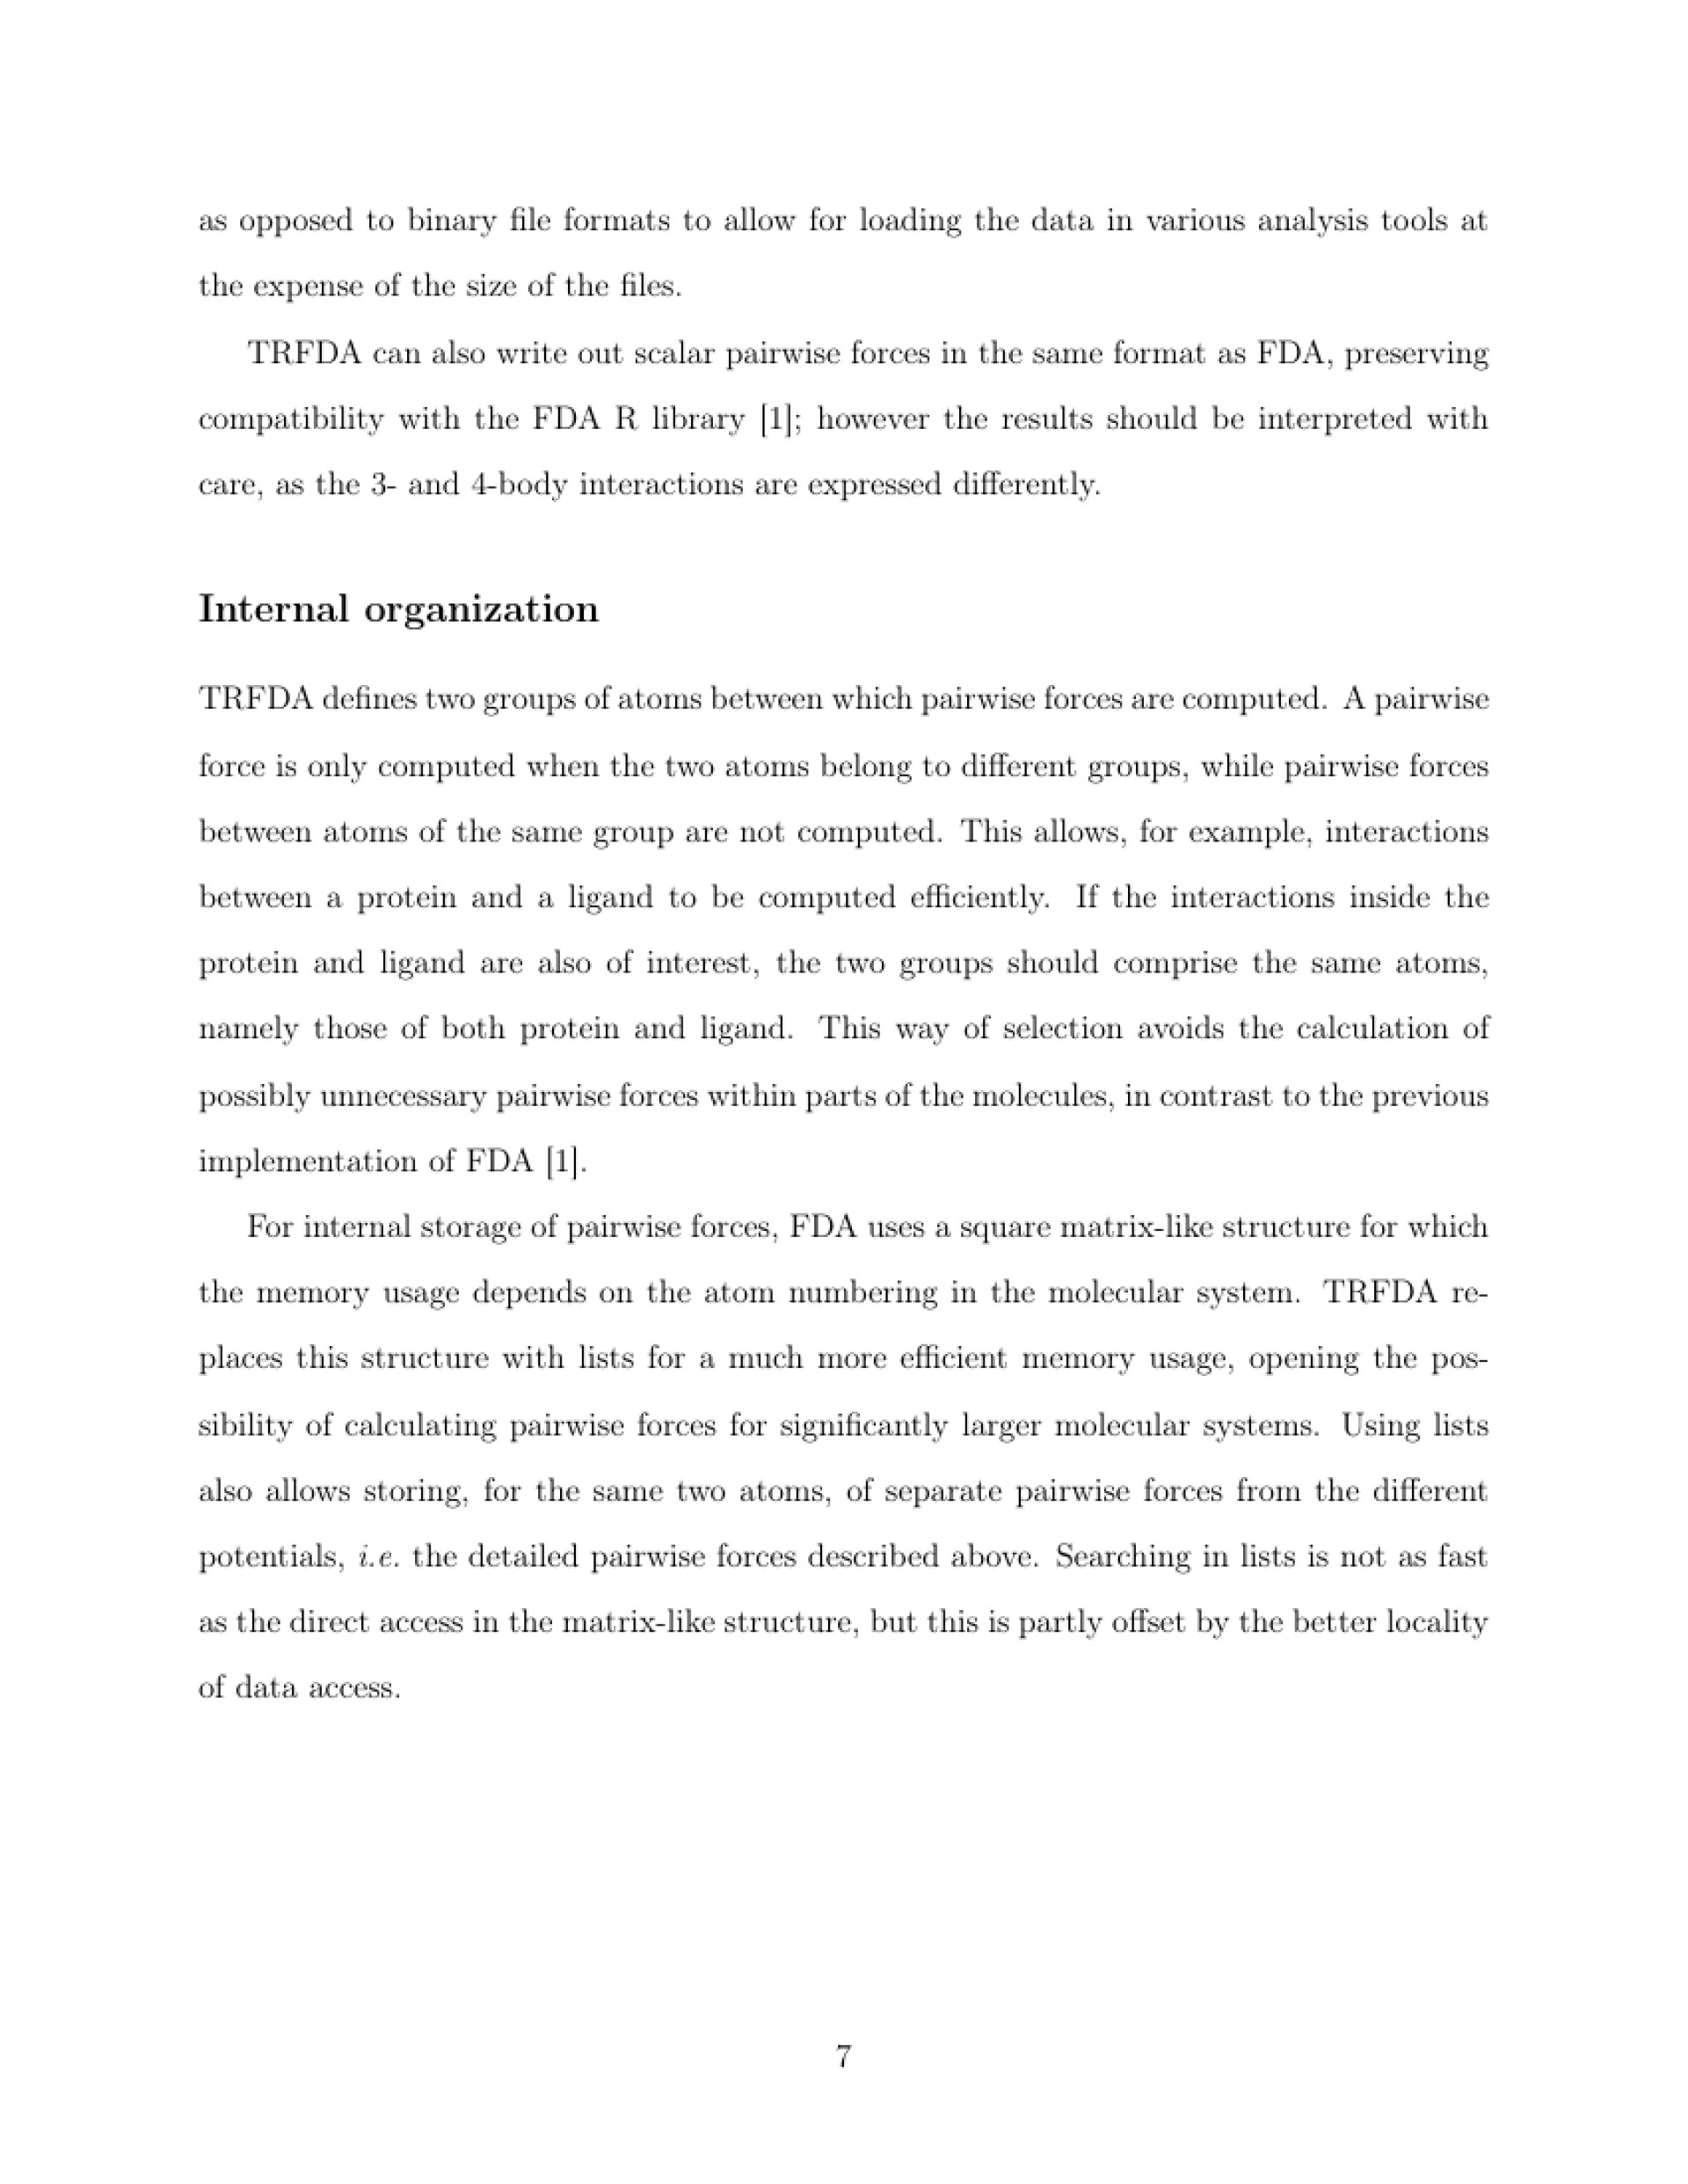 009 Output Research Paper Singular Formats Common Format Apa Template Outline 1920